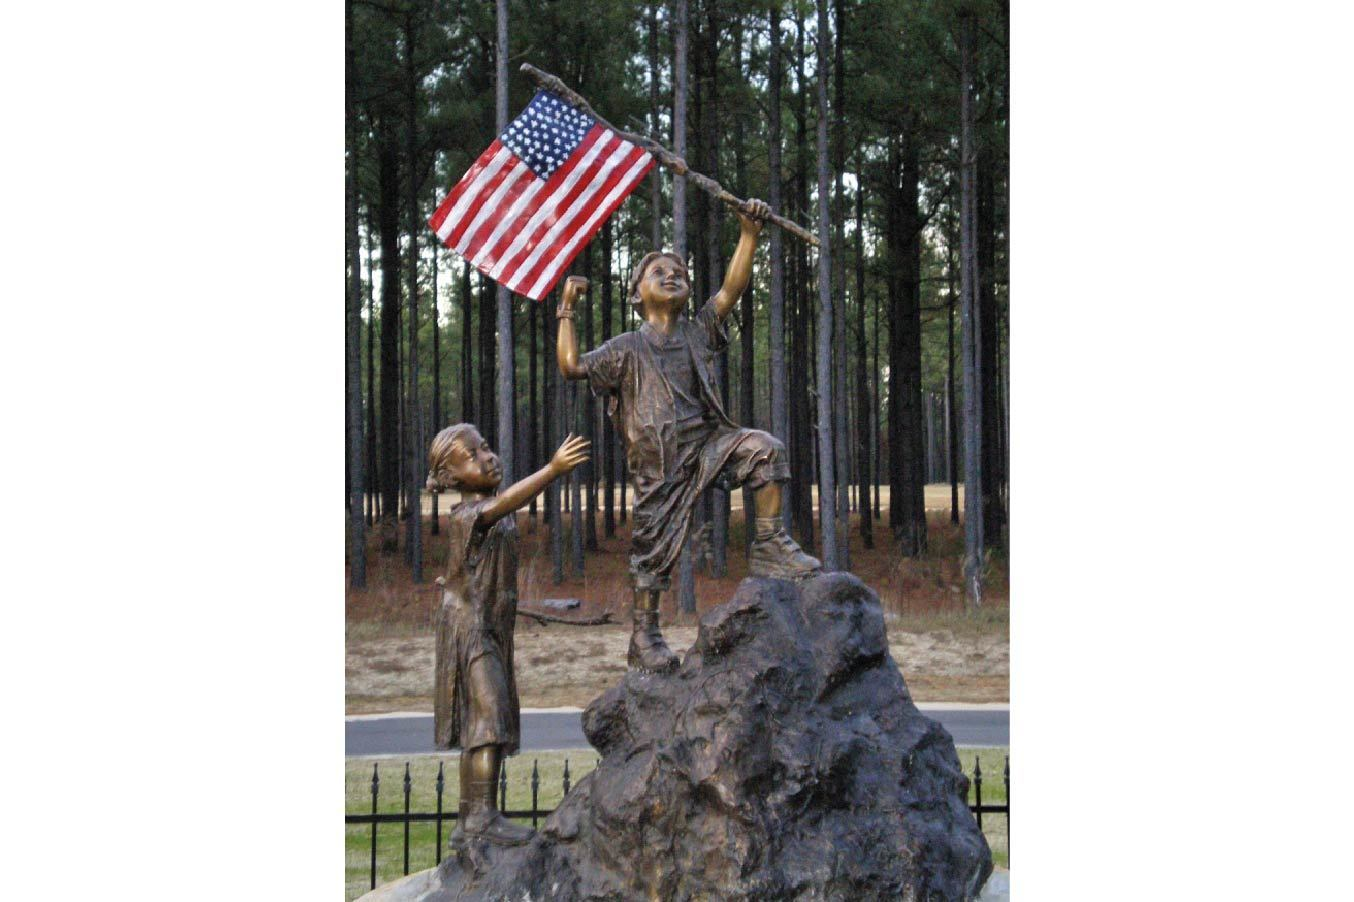 Detailed Bronze Statue of a Boy Holding the American Flag